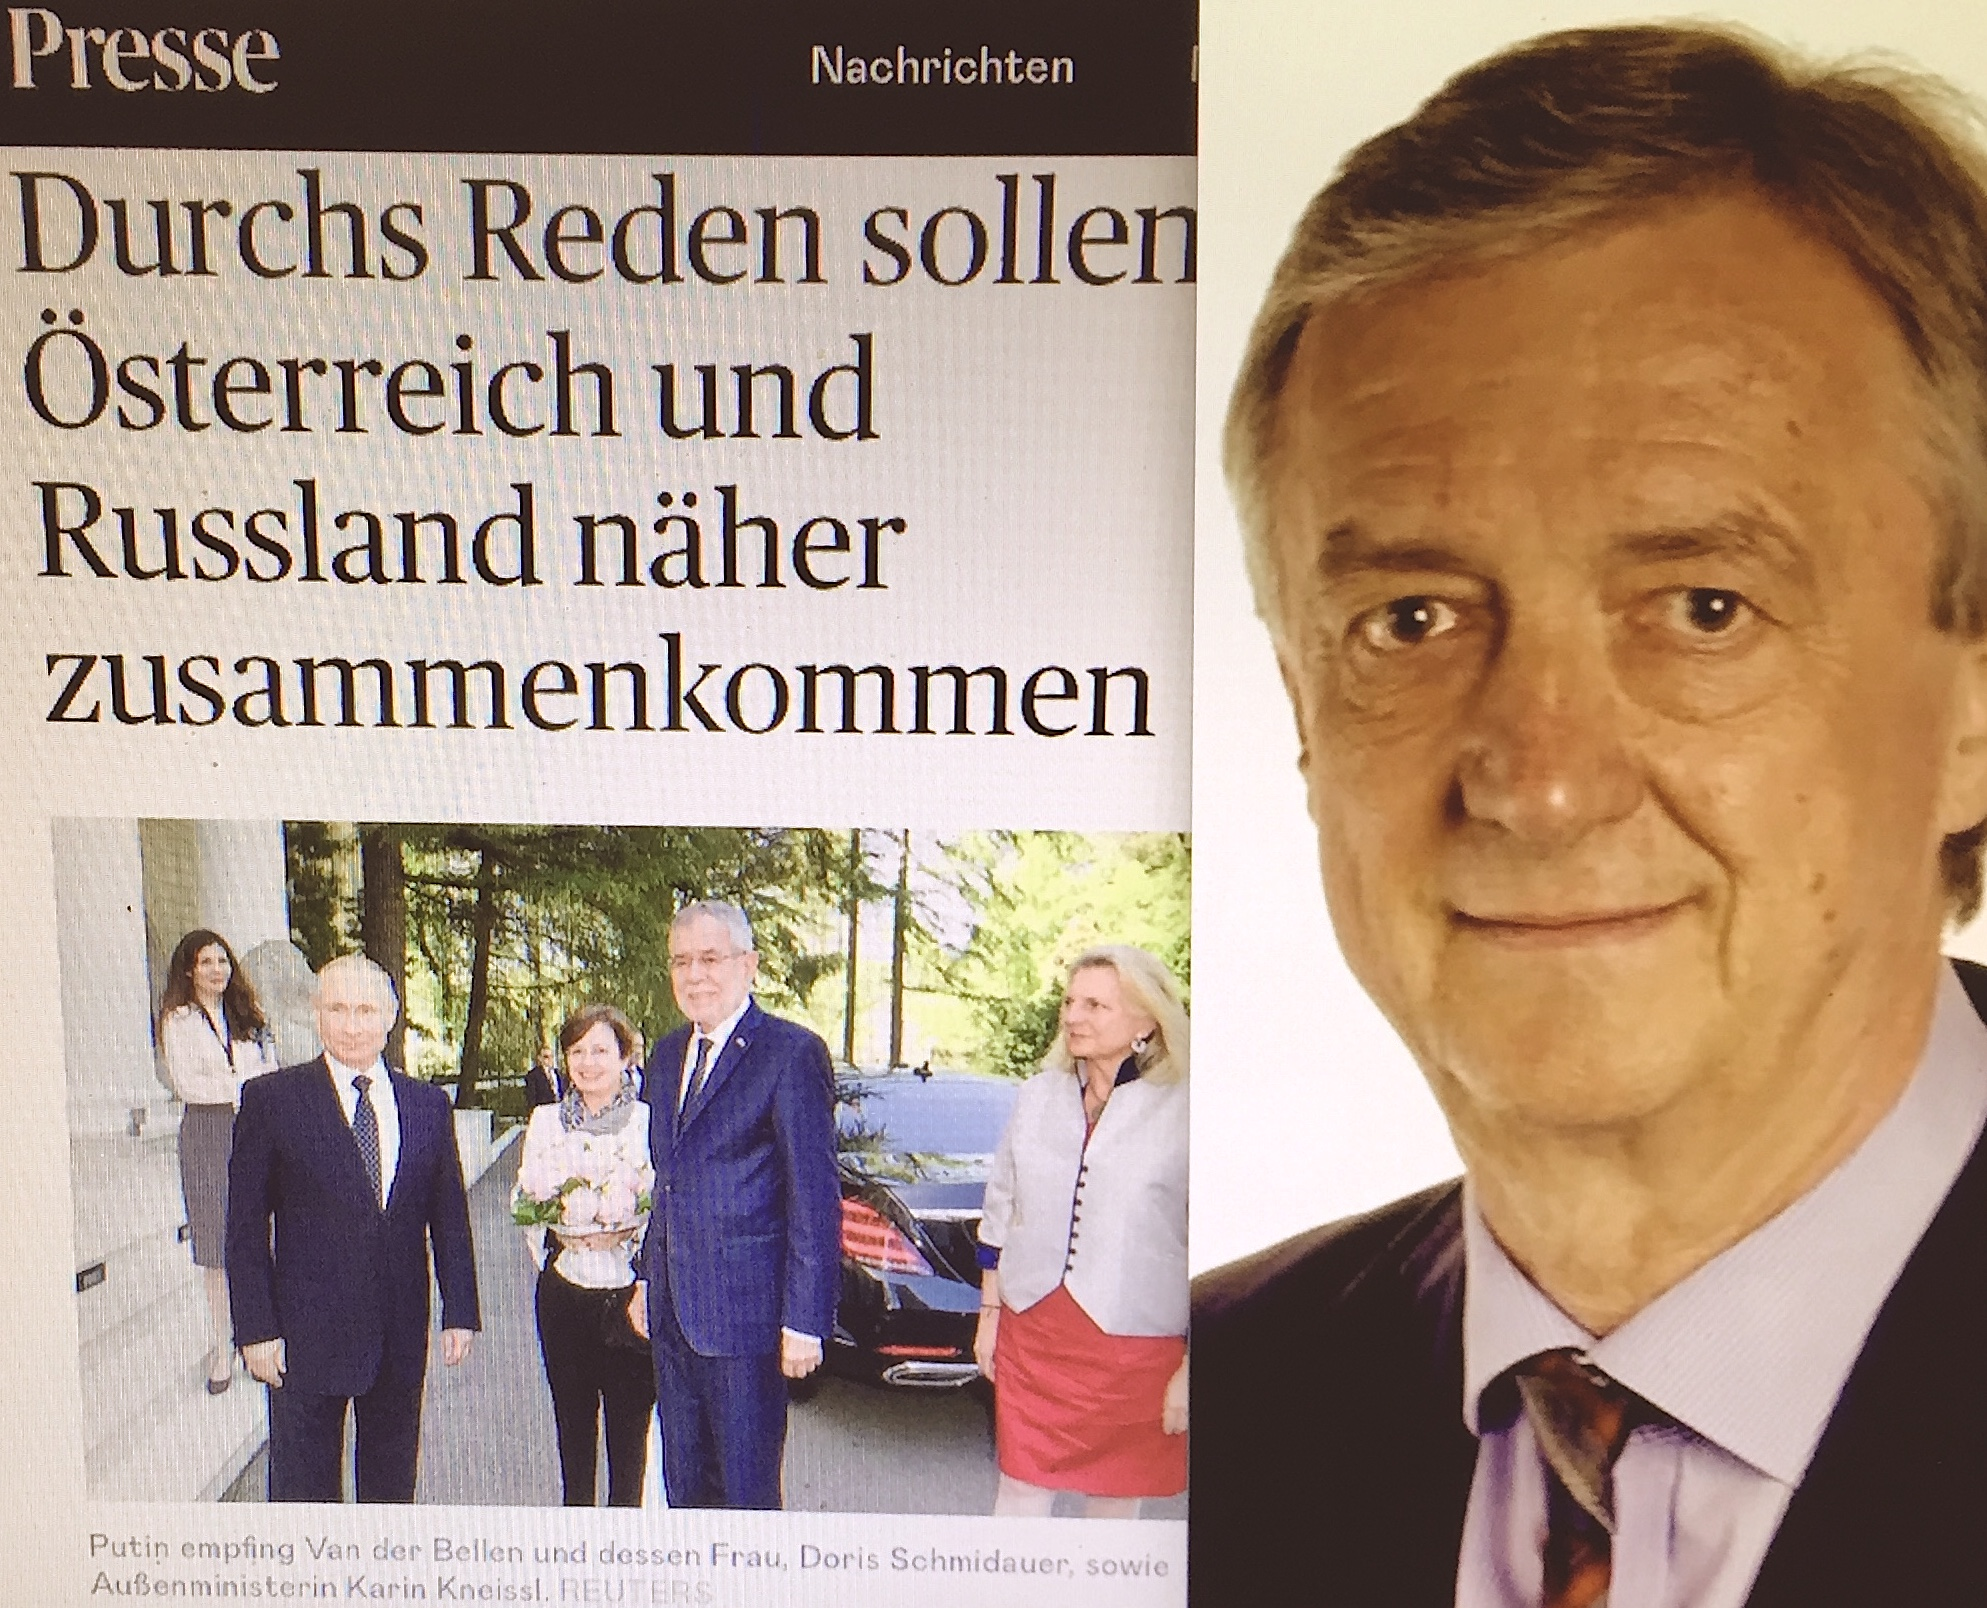 "Im Sotschi-Dialog Steering Committee im Bereich Wirtschaft ist der Vizepräsident der österreichischen Industriellenvereinigung, Vorarlberger Konsul der Russischen Föderation und CEO der Bertsch Holding, Ing. Hubert Bertsch. Für ihn machen die Russland-Sanktionen lediglich das Versagen der EU-Politik deutlich, diplomatische Lösungen zu finden. Sowohl am Round Table des Belarusian-Austrian Business Council als auch im Rahmen des Sotschi-Dialogs setzt er sich als Experte für Ökotechnologien intensiv für Verständigung, Kooperation und Interessenausgleich in der Ökonomie und hier ganz besonders für eine gemeinsame ökologisch-soziale Zukunft ein - immer die Erreichung der Klimaziele im Fokus. in the Steering Committee of Sochi Dialogue in economy/business is the Vice President of the Austrian Association of Industrialists, Vorarlberg Consul of the Russian Federation and CEO of Bertsch Holding, Ing. Hubert Bertsch. For him, the Russia sanctions only show the failure of EU policies to find diplomatic solutions. Both at the Round Table of the Belarusian-Austrian Business Council and as part of the Sochi Dialogue, as an expert in ecotechnology, he works intensively for understanding, cooperation and balancing interests in the economy, and here in particular for a common ecological and social future - always focussed on achieving climate goals. Verena Daum www.progression.at, Buch ""Verbotene Frucht - unser innerer Kampf zwischen materieller Gier und universaler Liebe""."